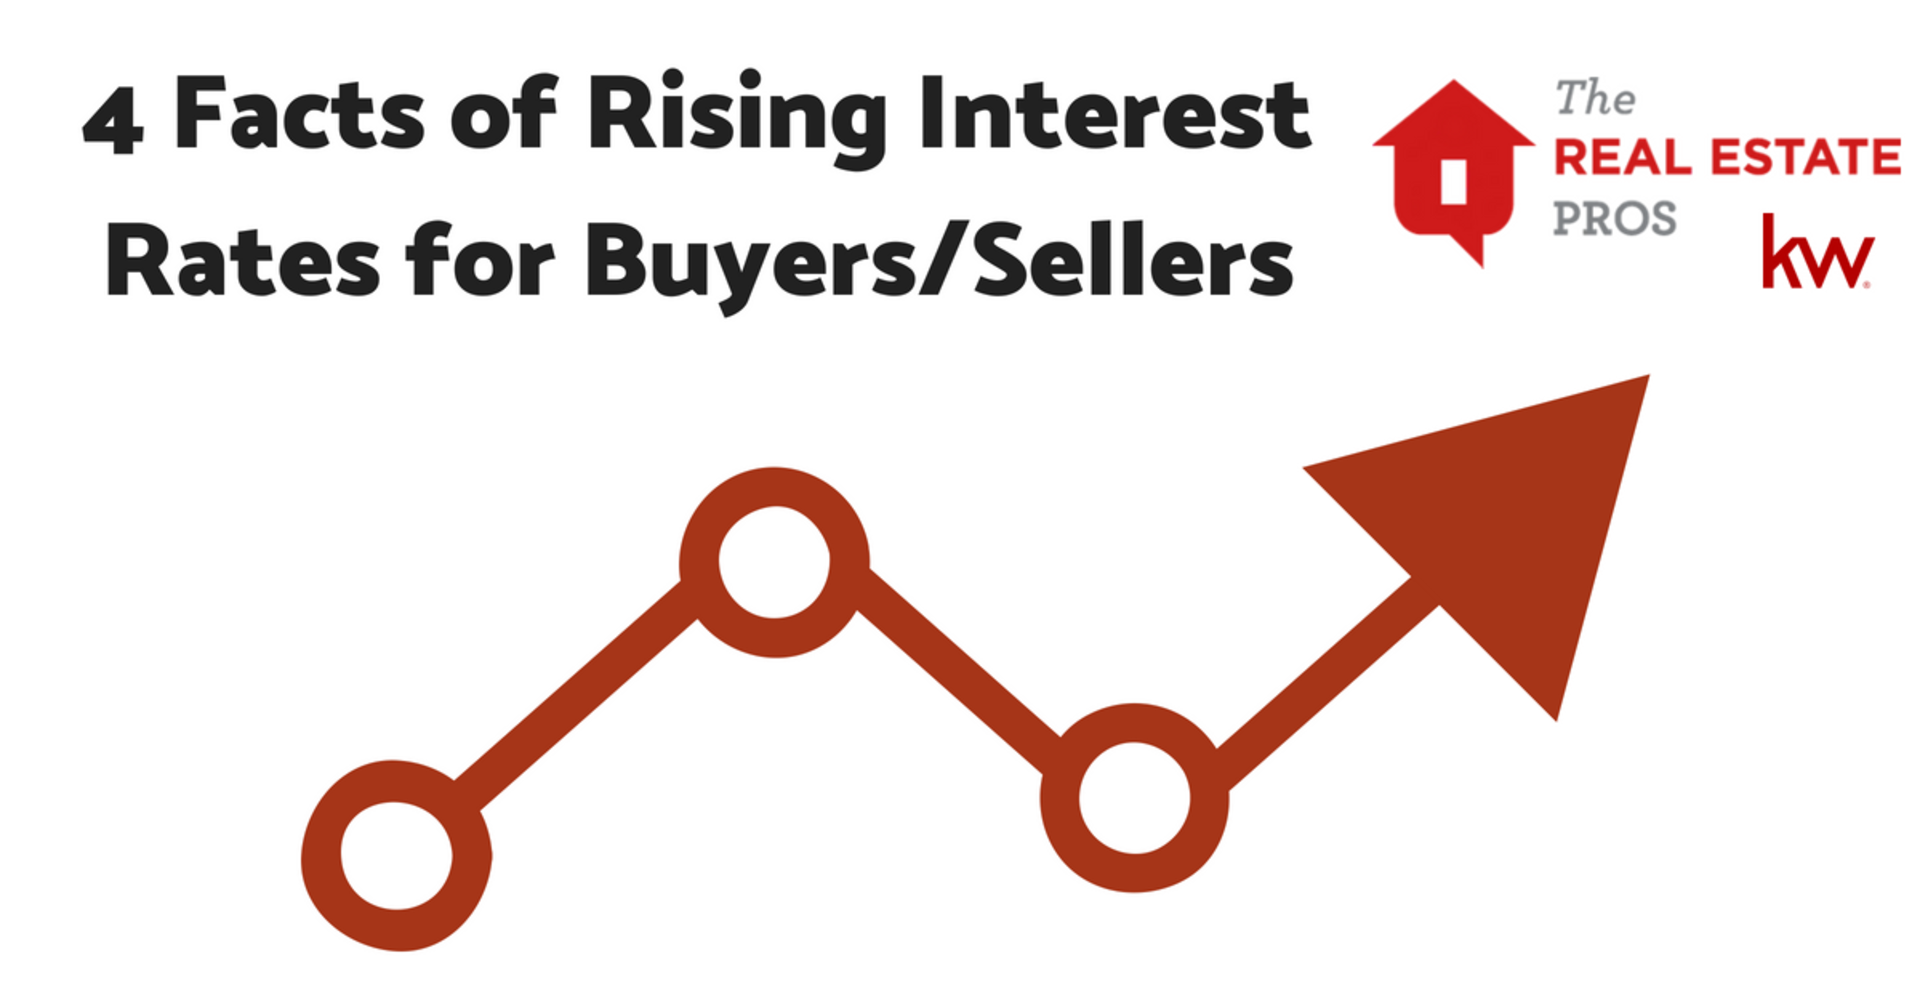 4 Facts of Rising Interest Rates for Buyers/Sellers